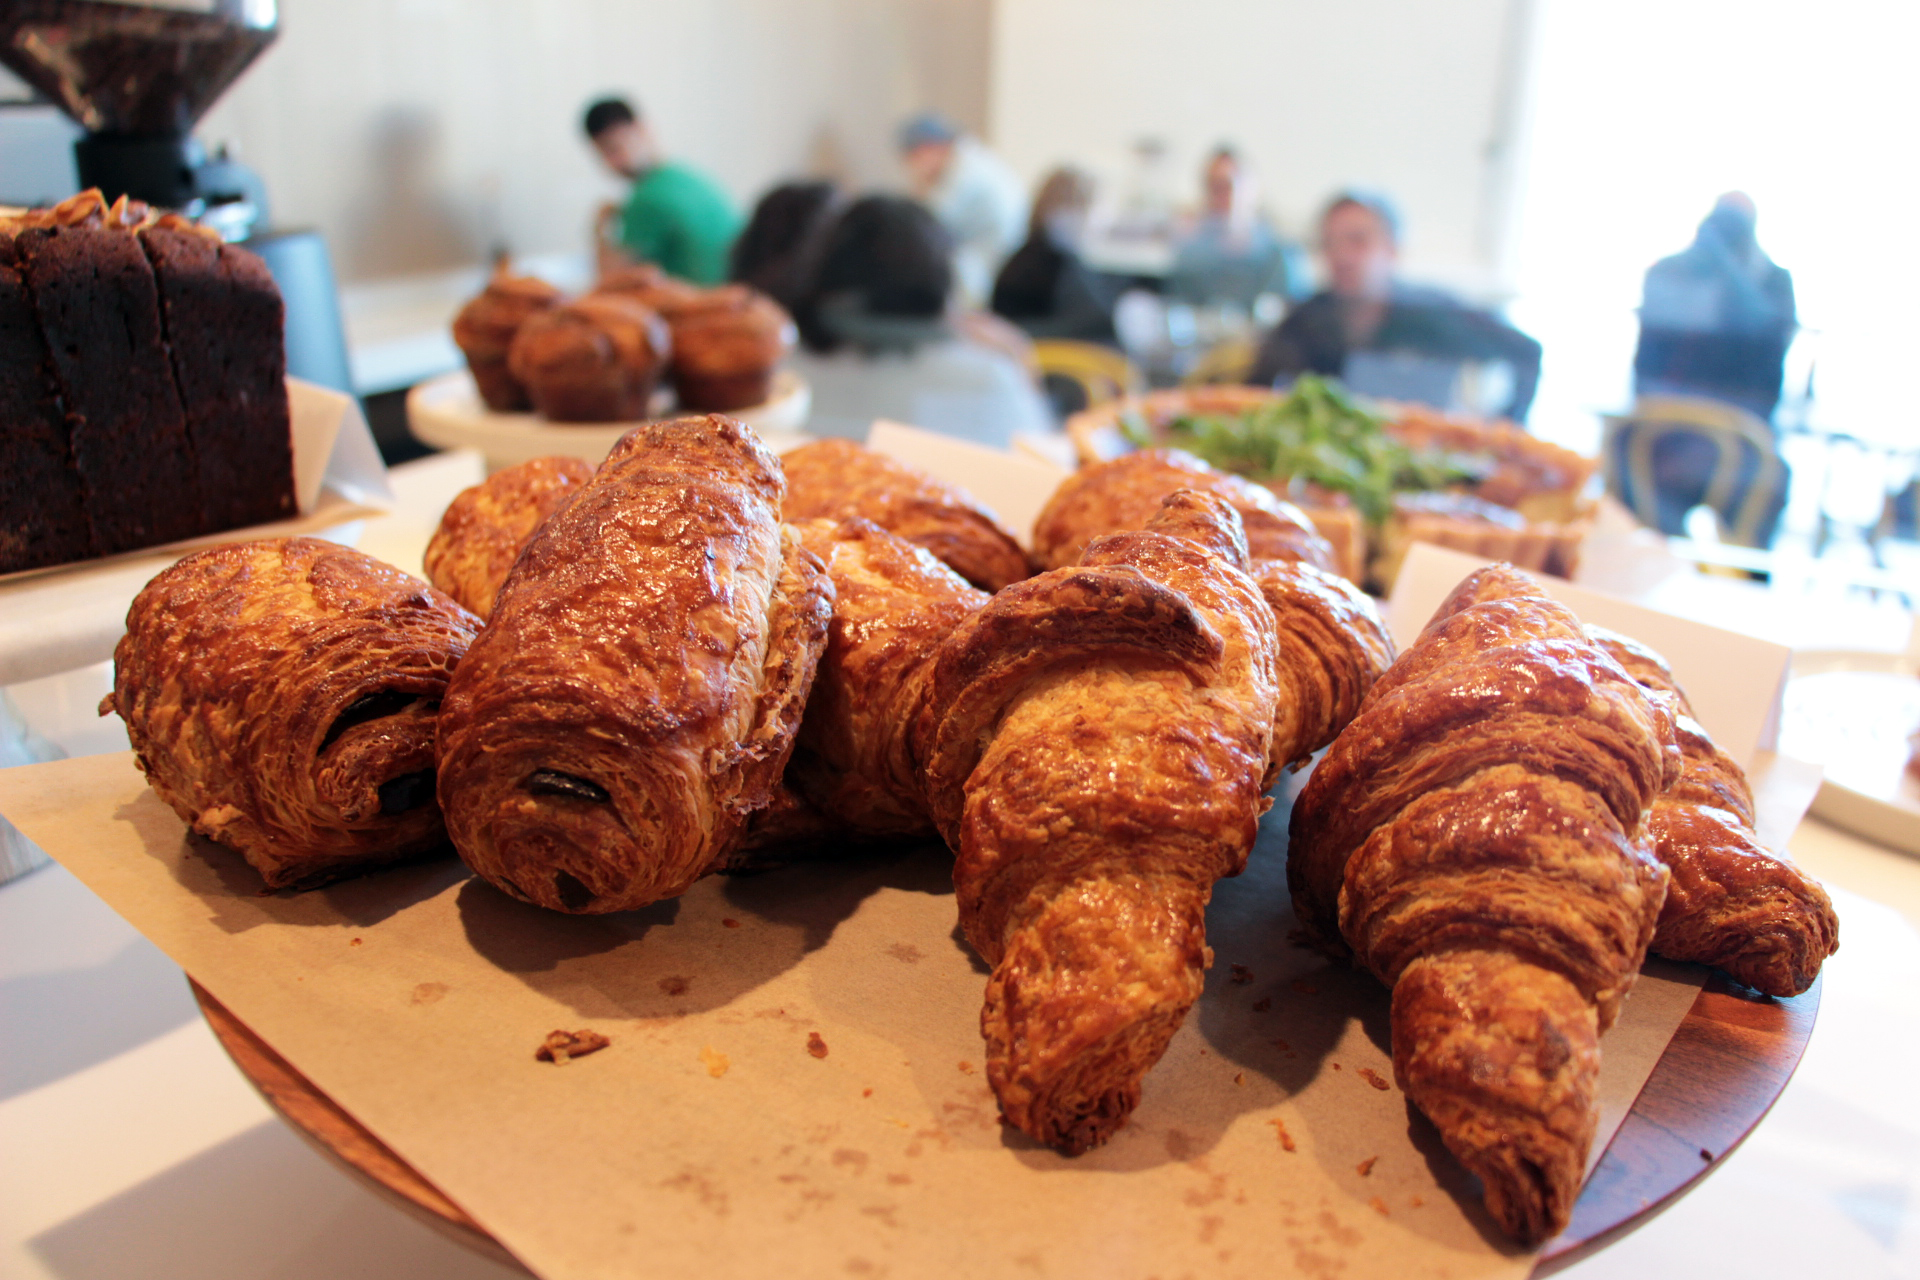 Buttery housemade croissants